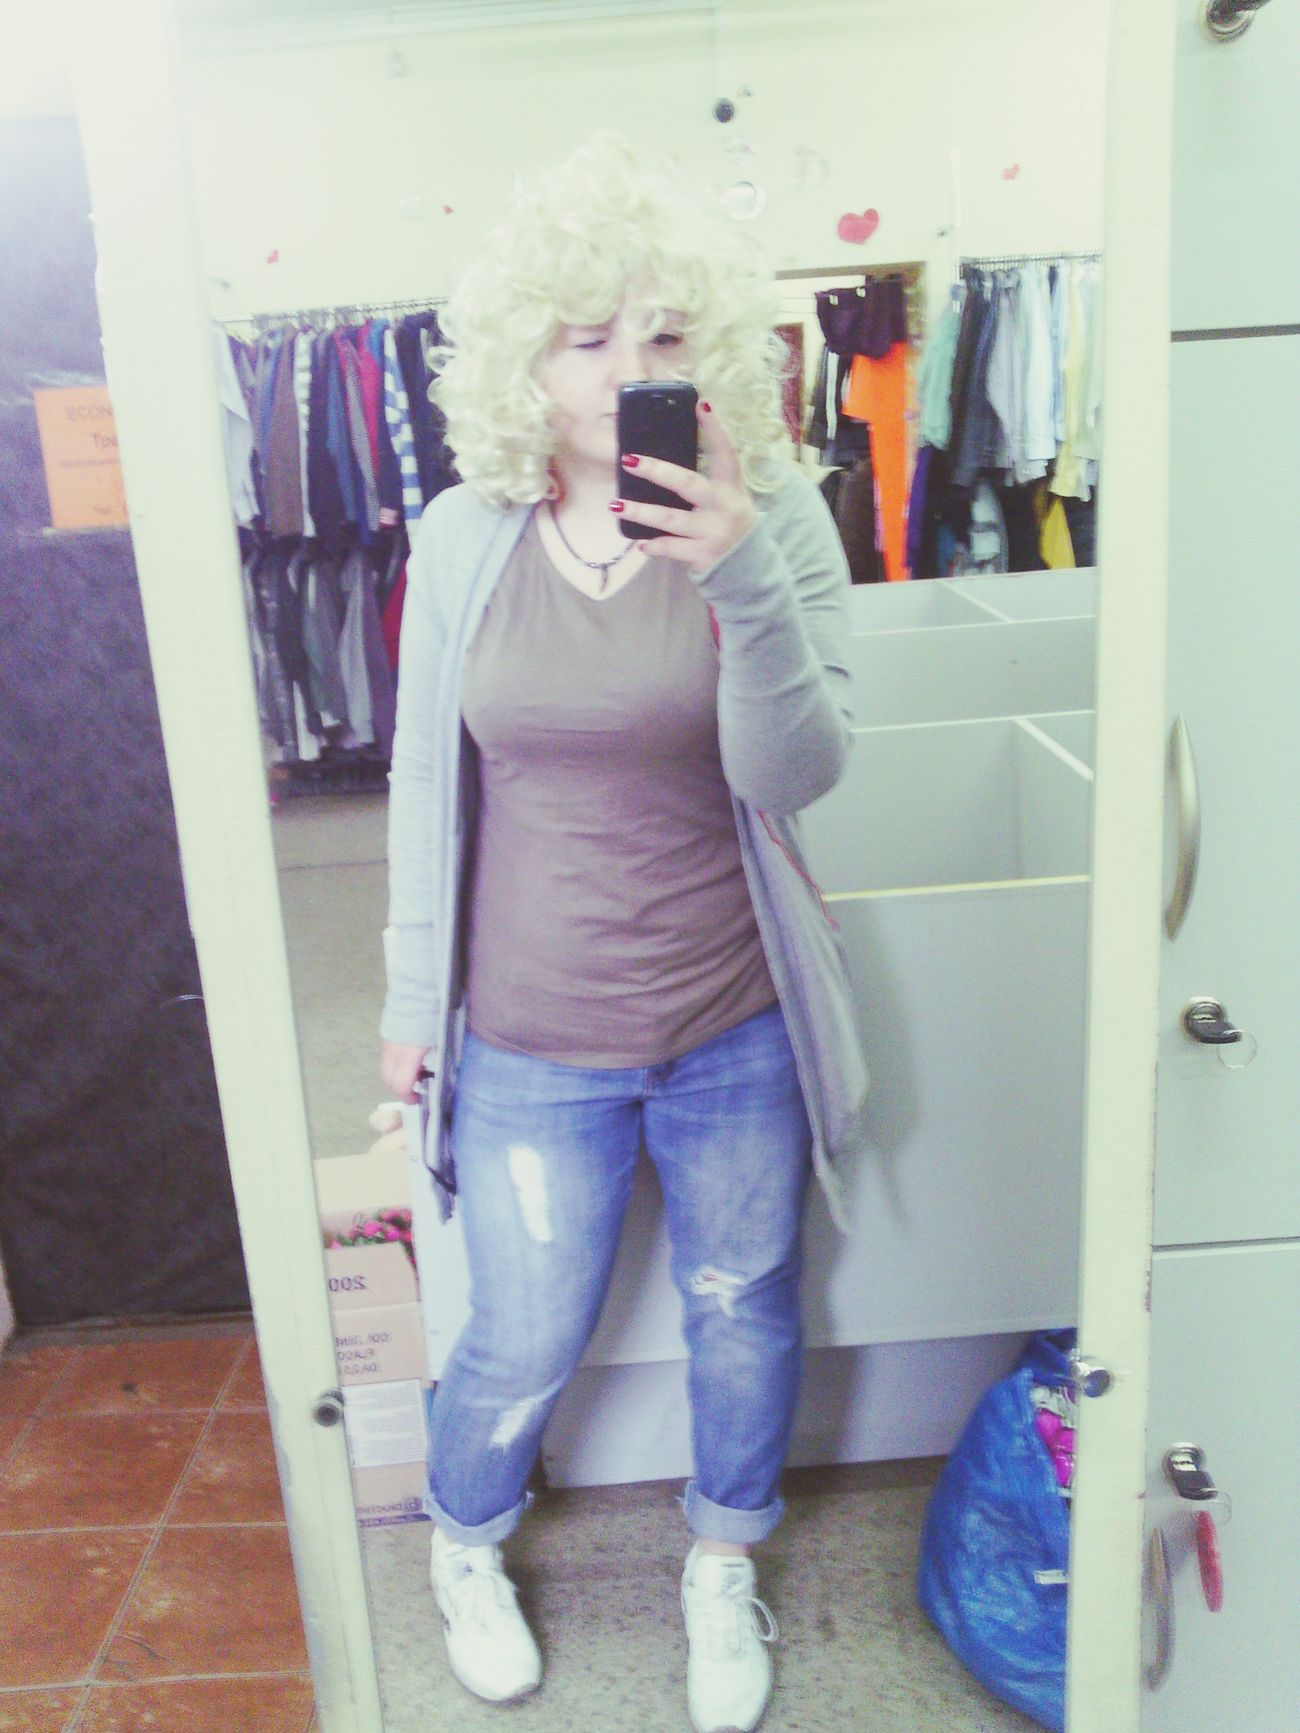 Taking Photos Check This Out Hello World Blond Goodmorning Selfie That's Me Girl Kiev Smile ✌